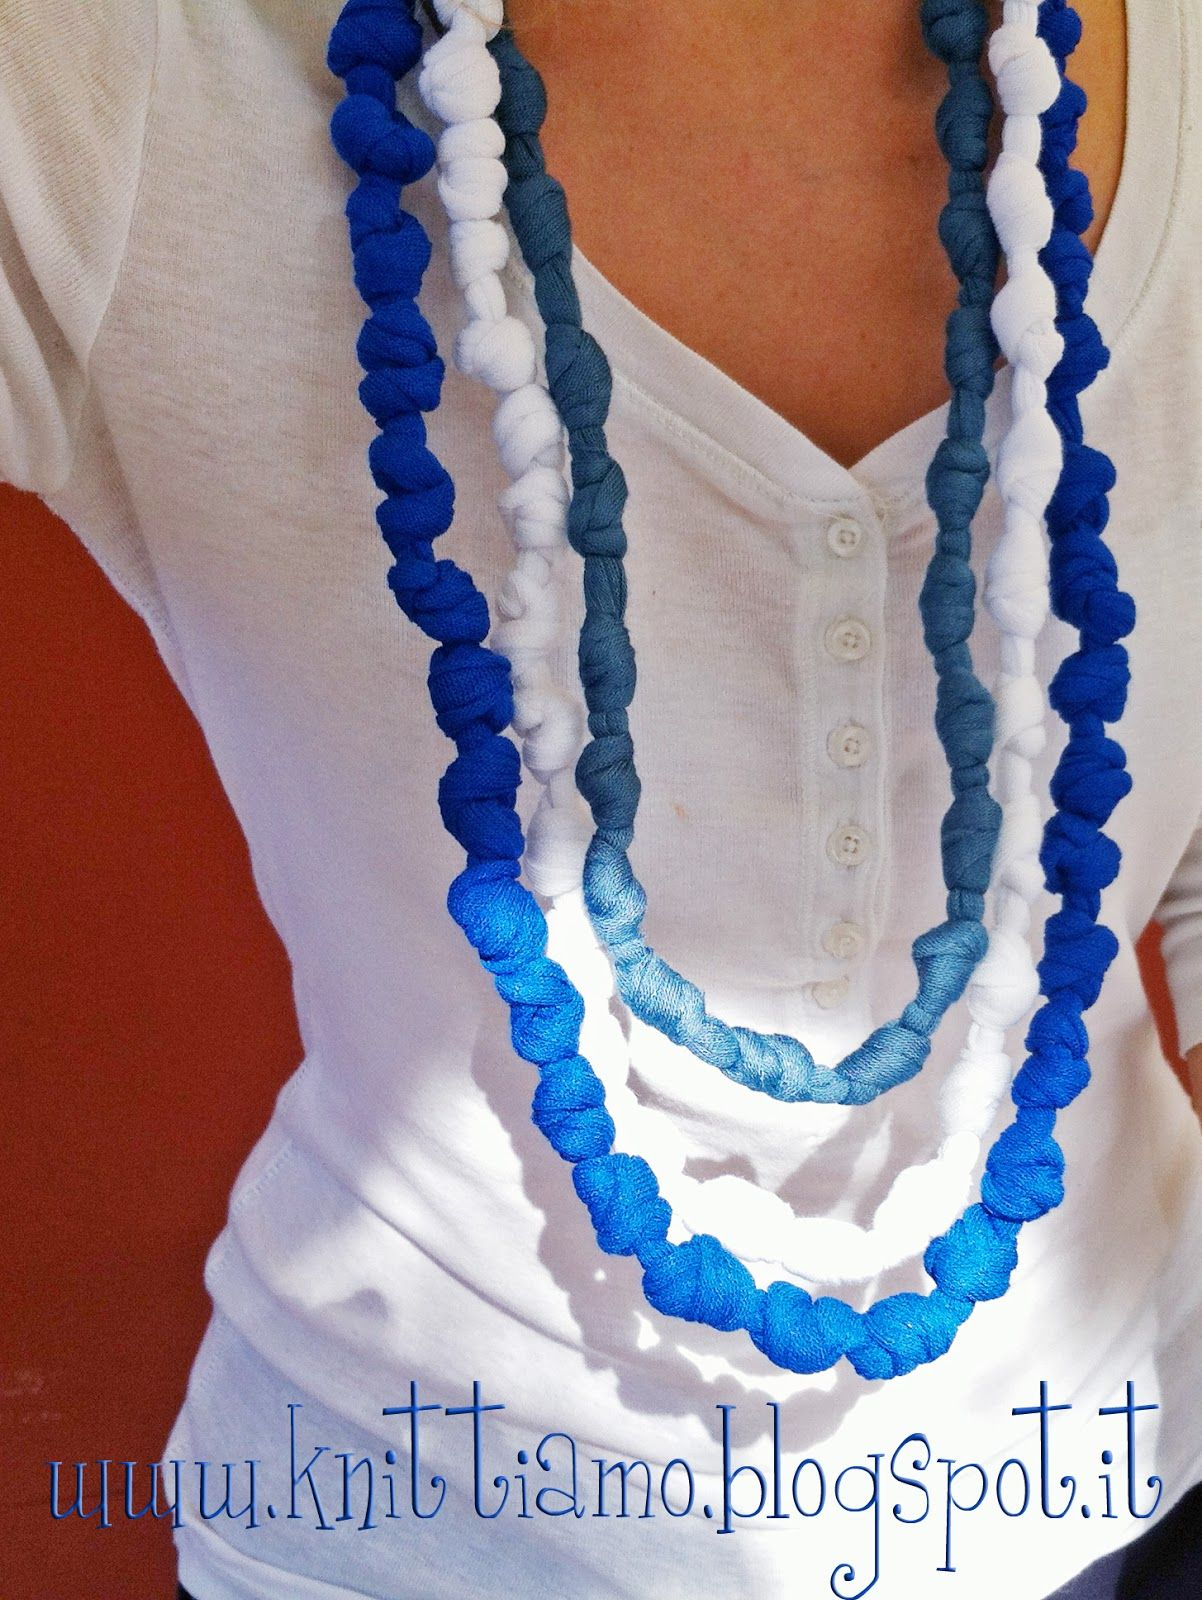 DIY Knotted Tshirt Yarn Necklace (tutorial in Spanish, but pictures easy to follow)